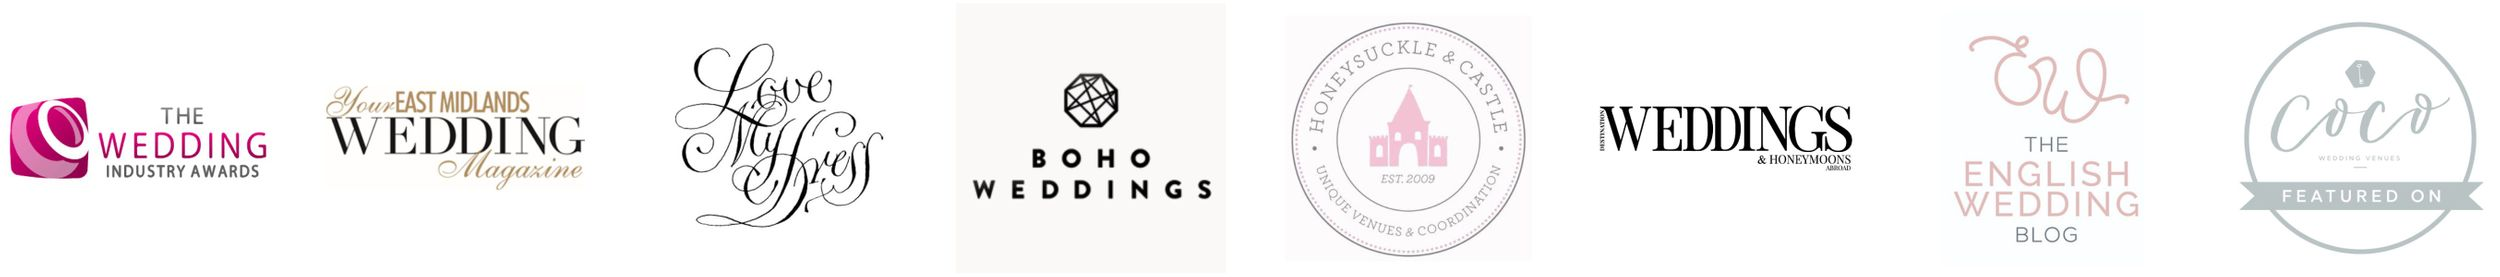 Wedding Industry Logos